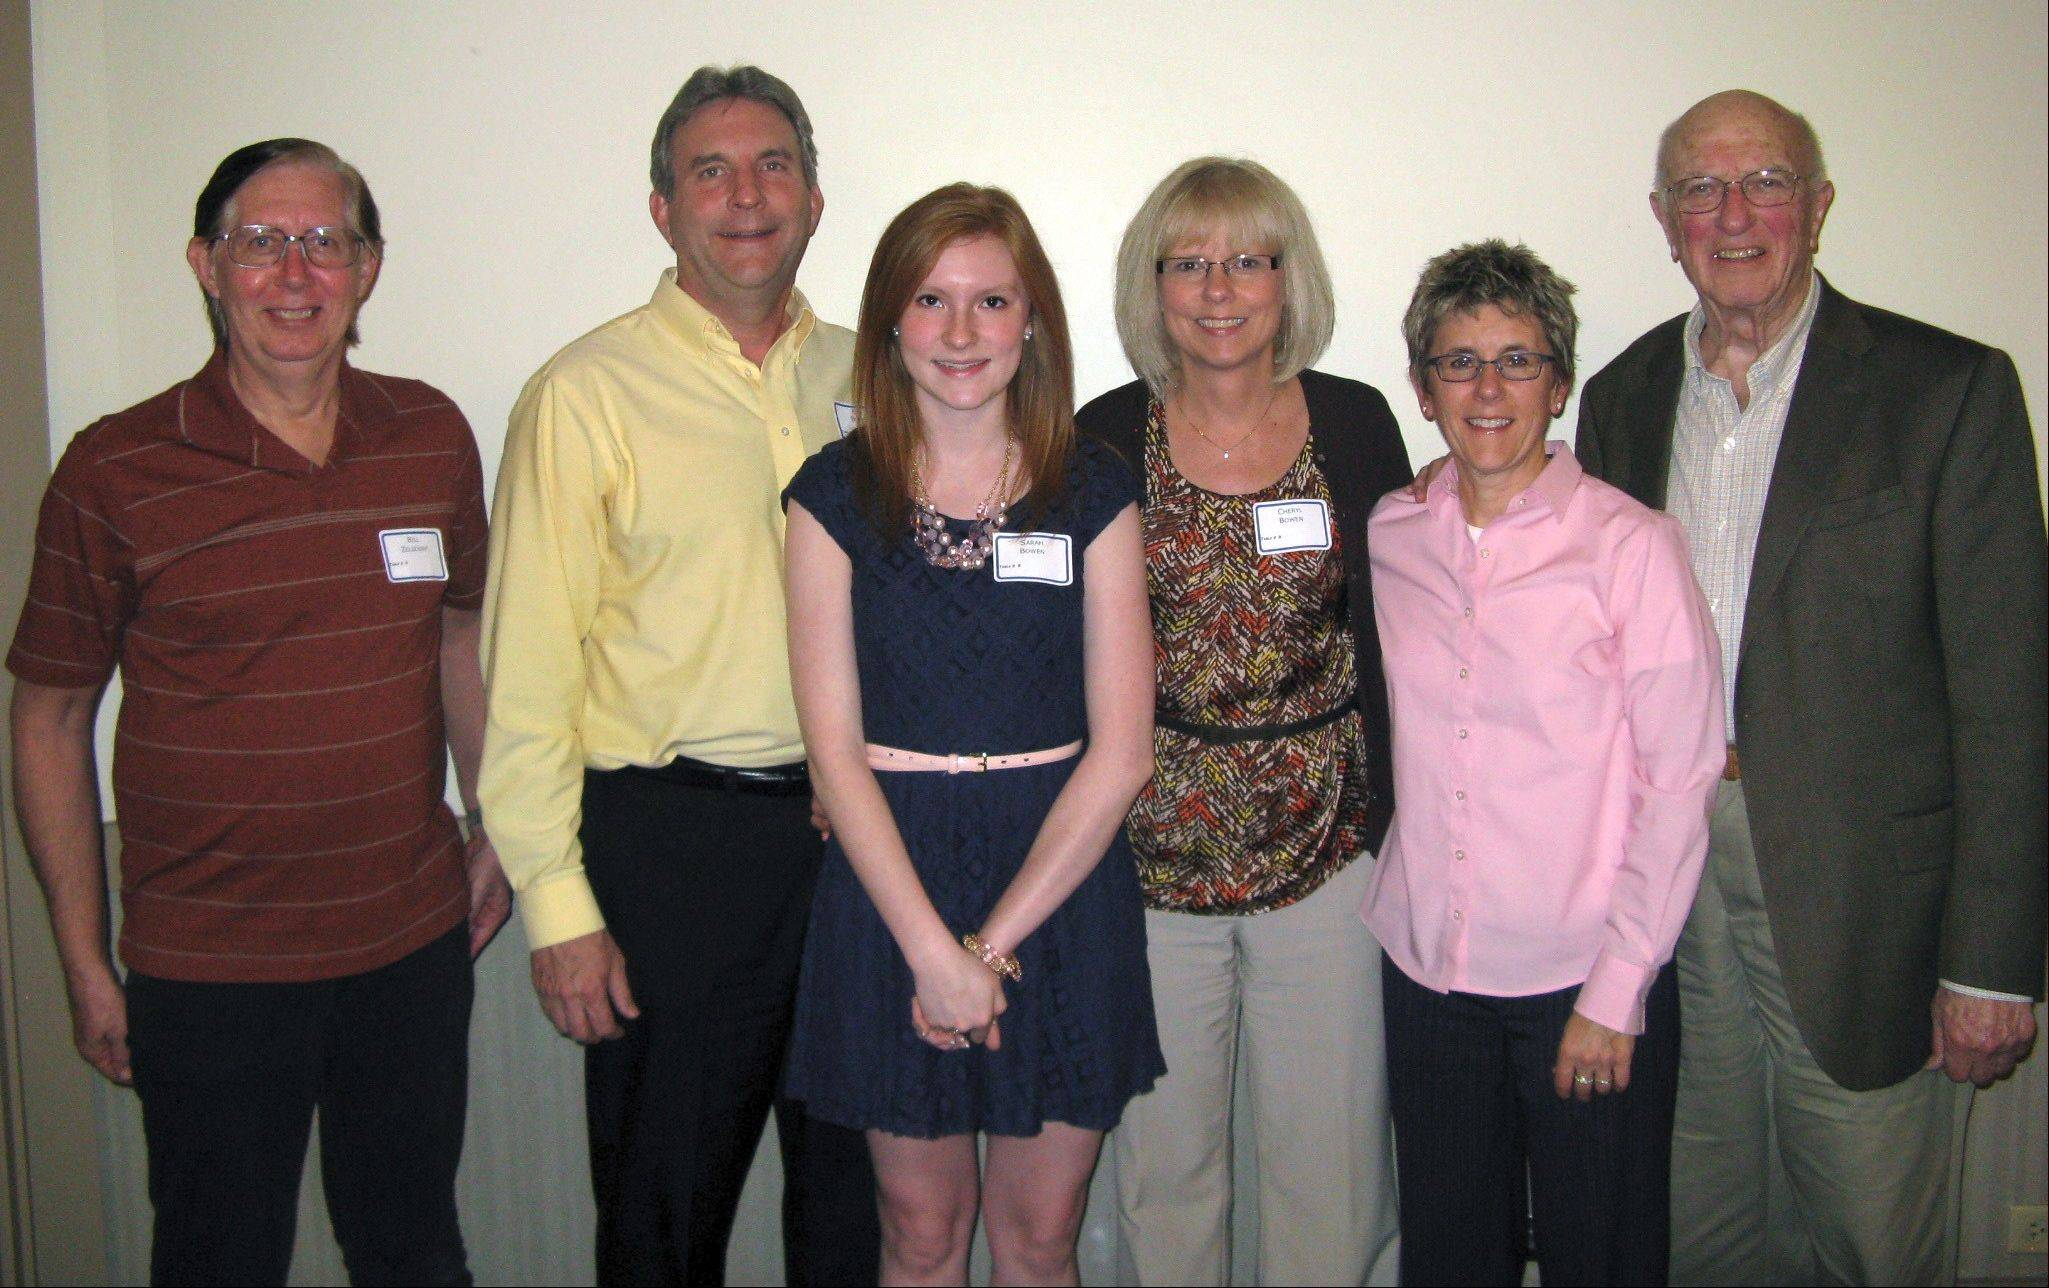 Dundee-Crown High School student Sarah Bowen, who was awarded a $1,500 scholarship by the Dundee Township Visitor's Center, stands with her parents, Bill and Cheryl Bowen, center, market manager Bill Zelsdorf, left, board secretary Paula Lauer, and board member Herbert Beck, right.